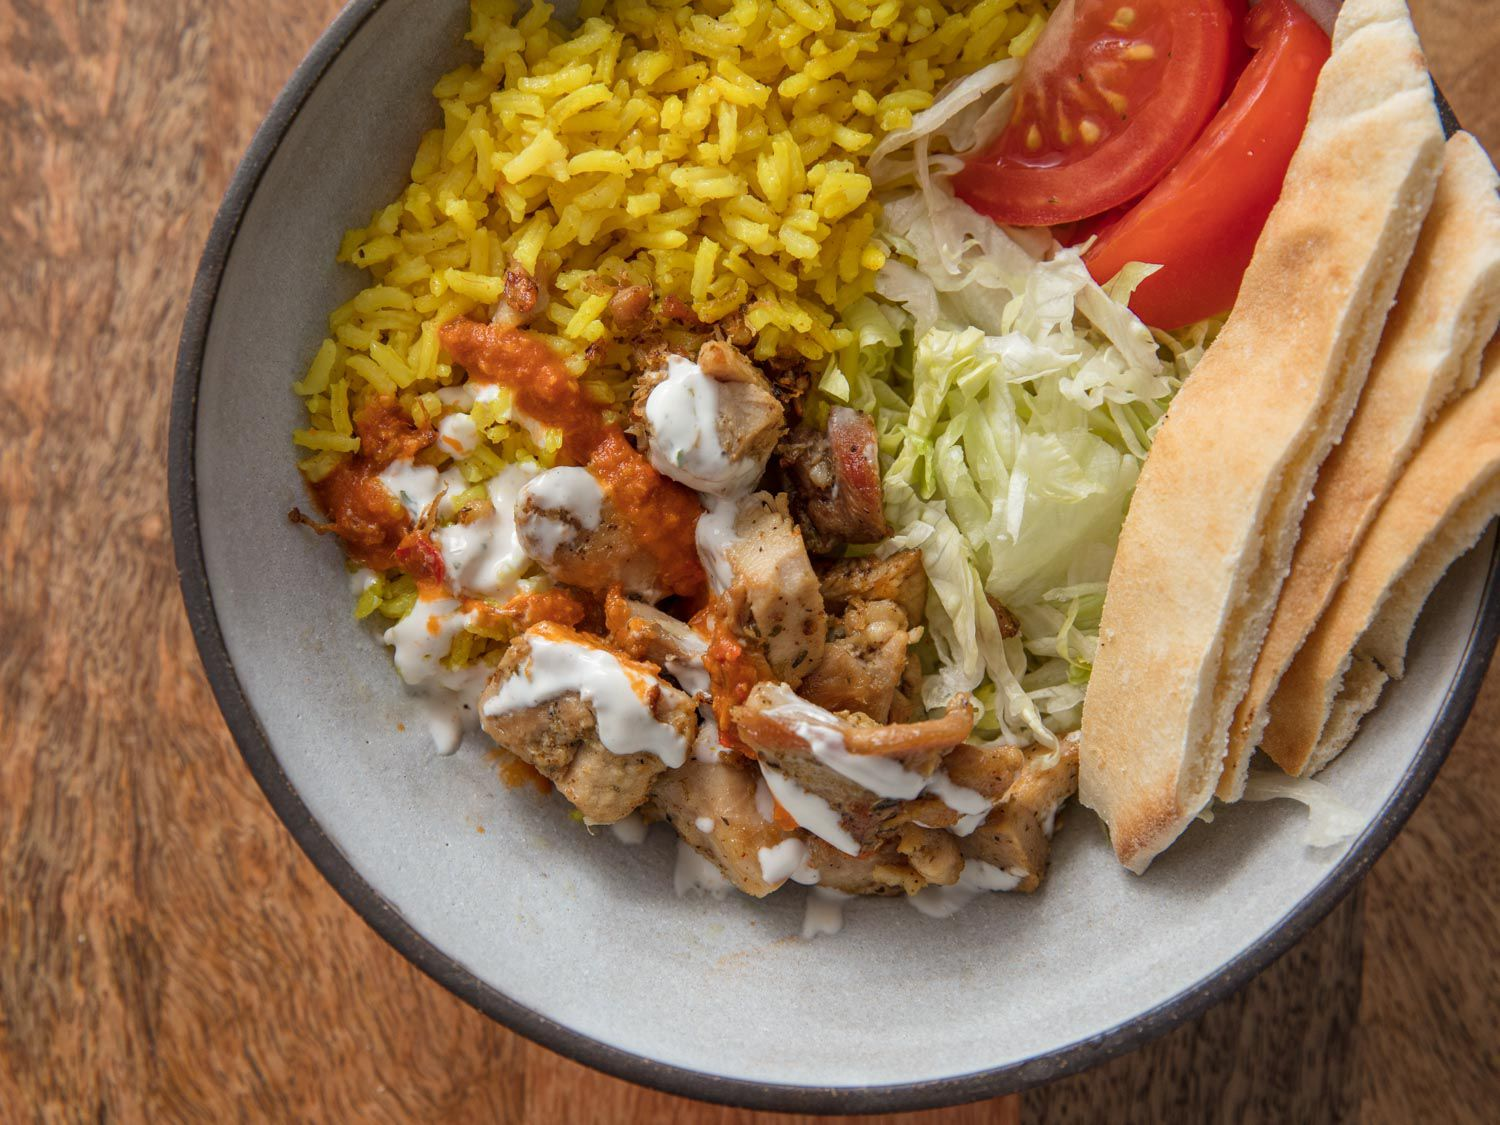 Serious Eats' Halal Cart-Style Chicken and Rice With White Sauce